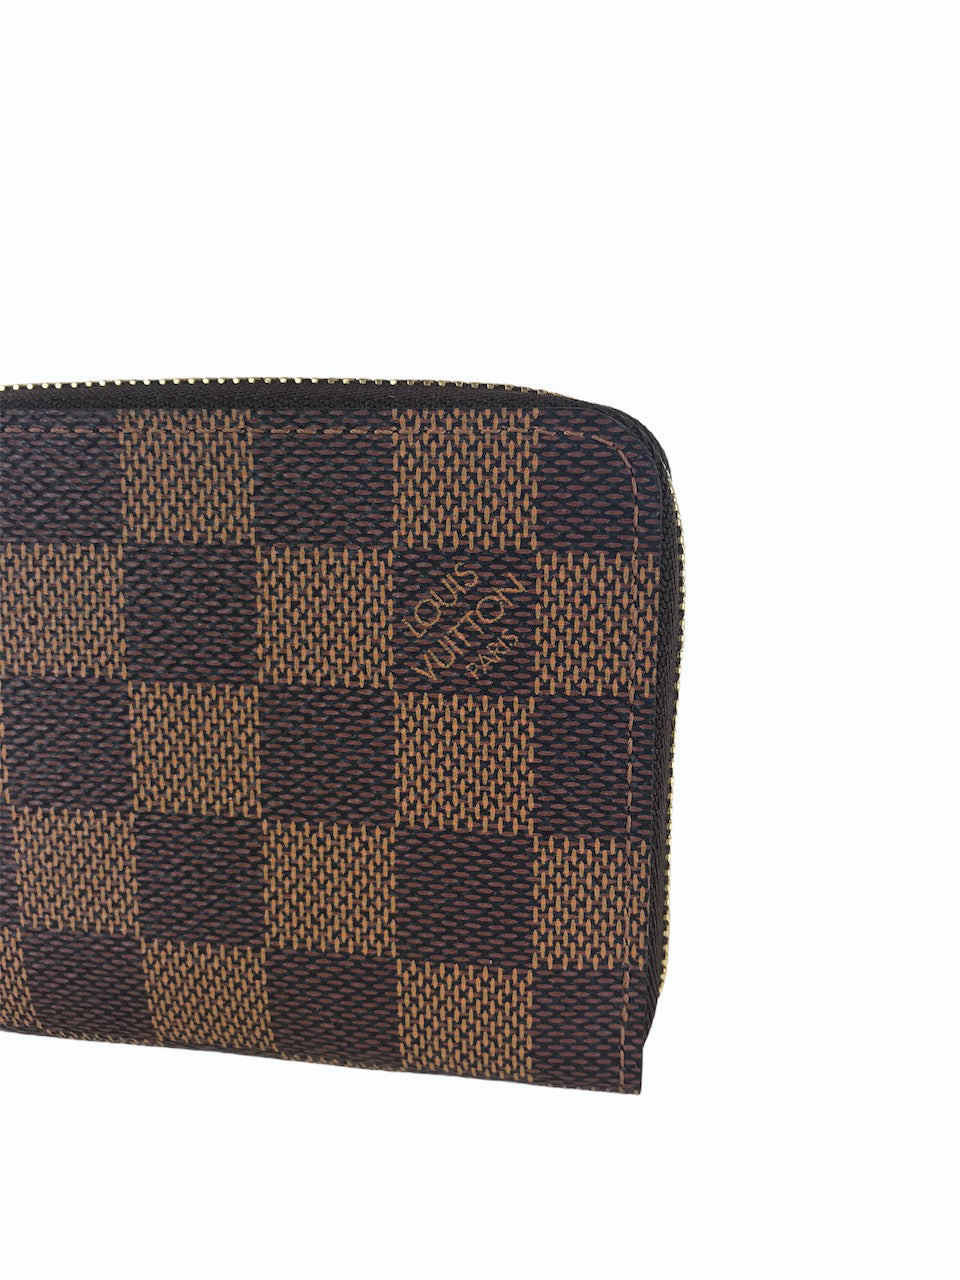 Louis Vuitton Damier Ebene Zippy Purse